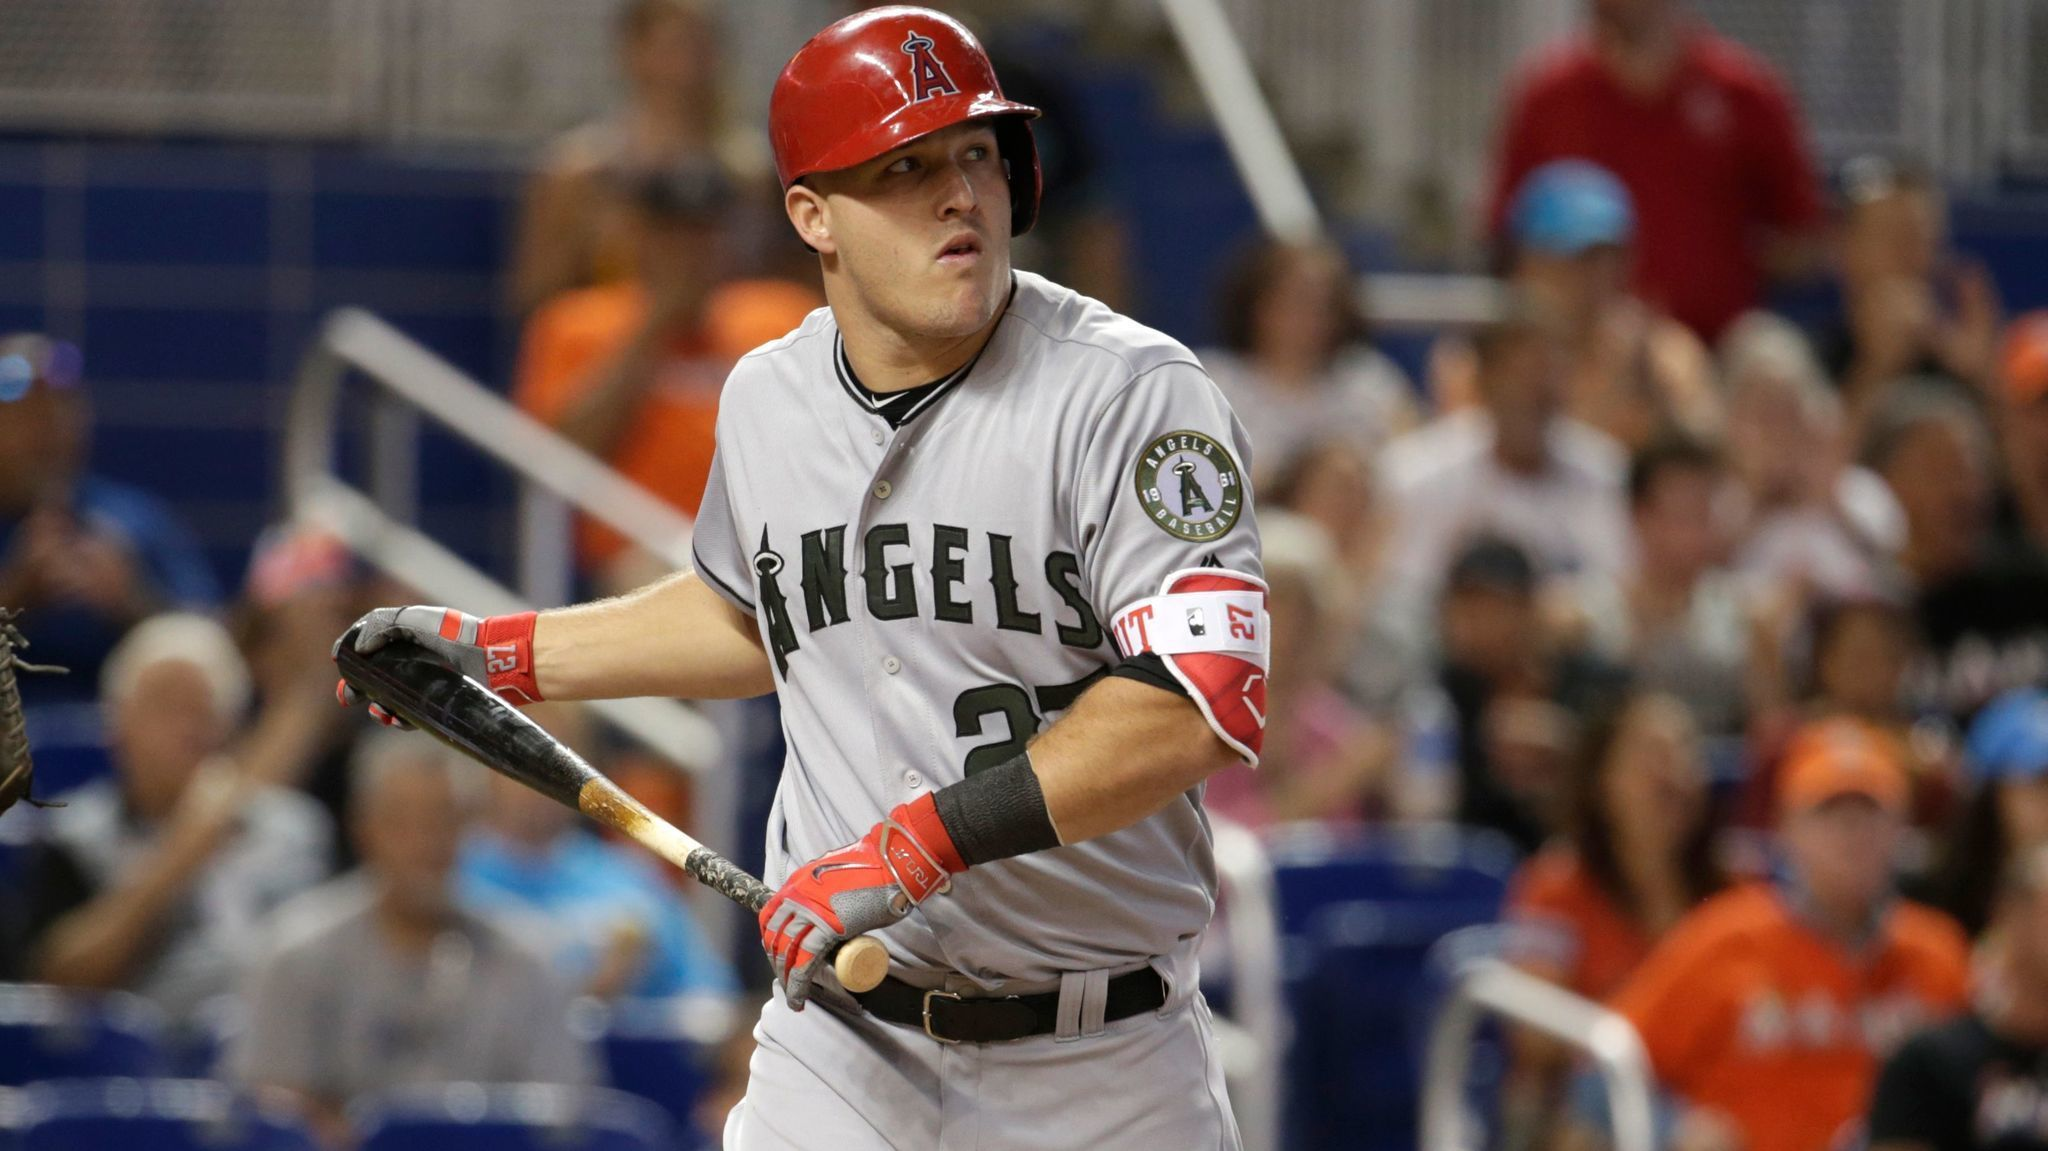 La-sp-angels-by-the-numbers-20170713